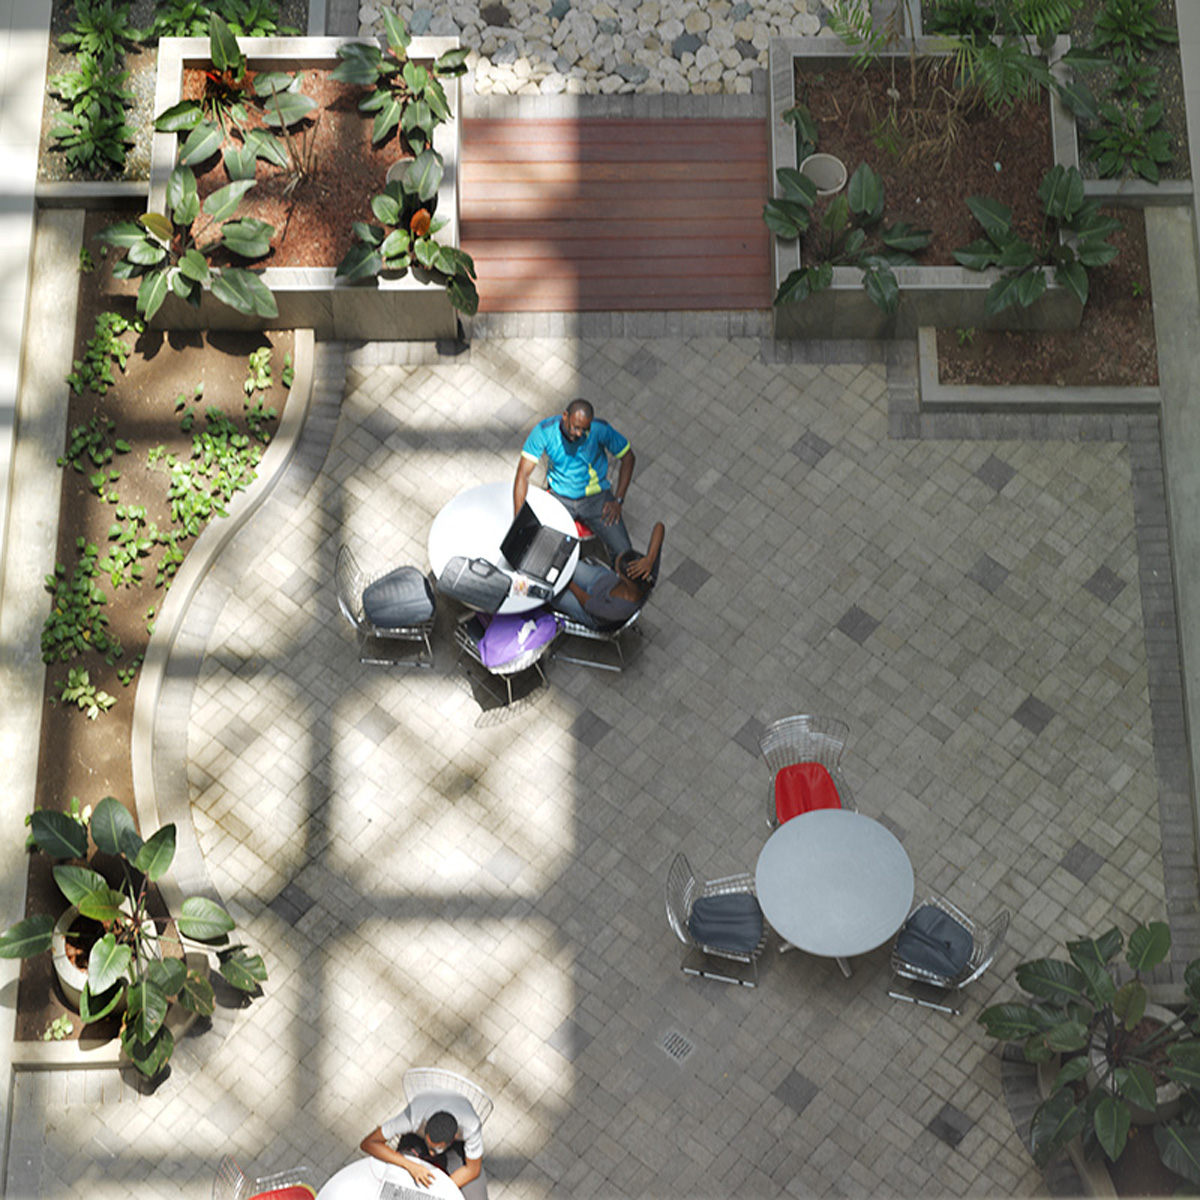 social space illuminated by skylights in the atrium